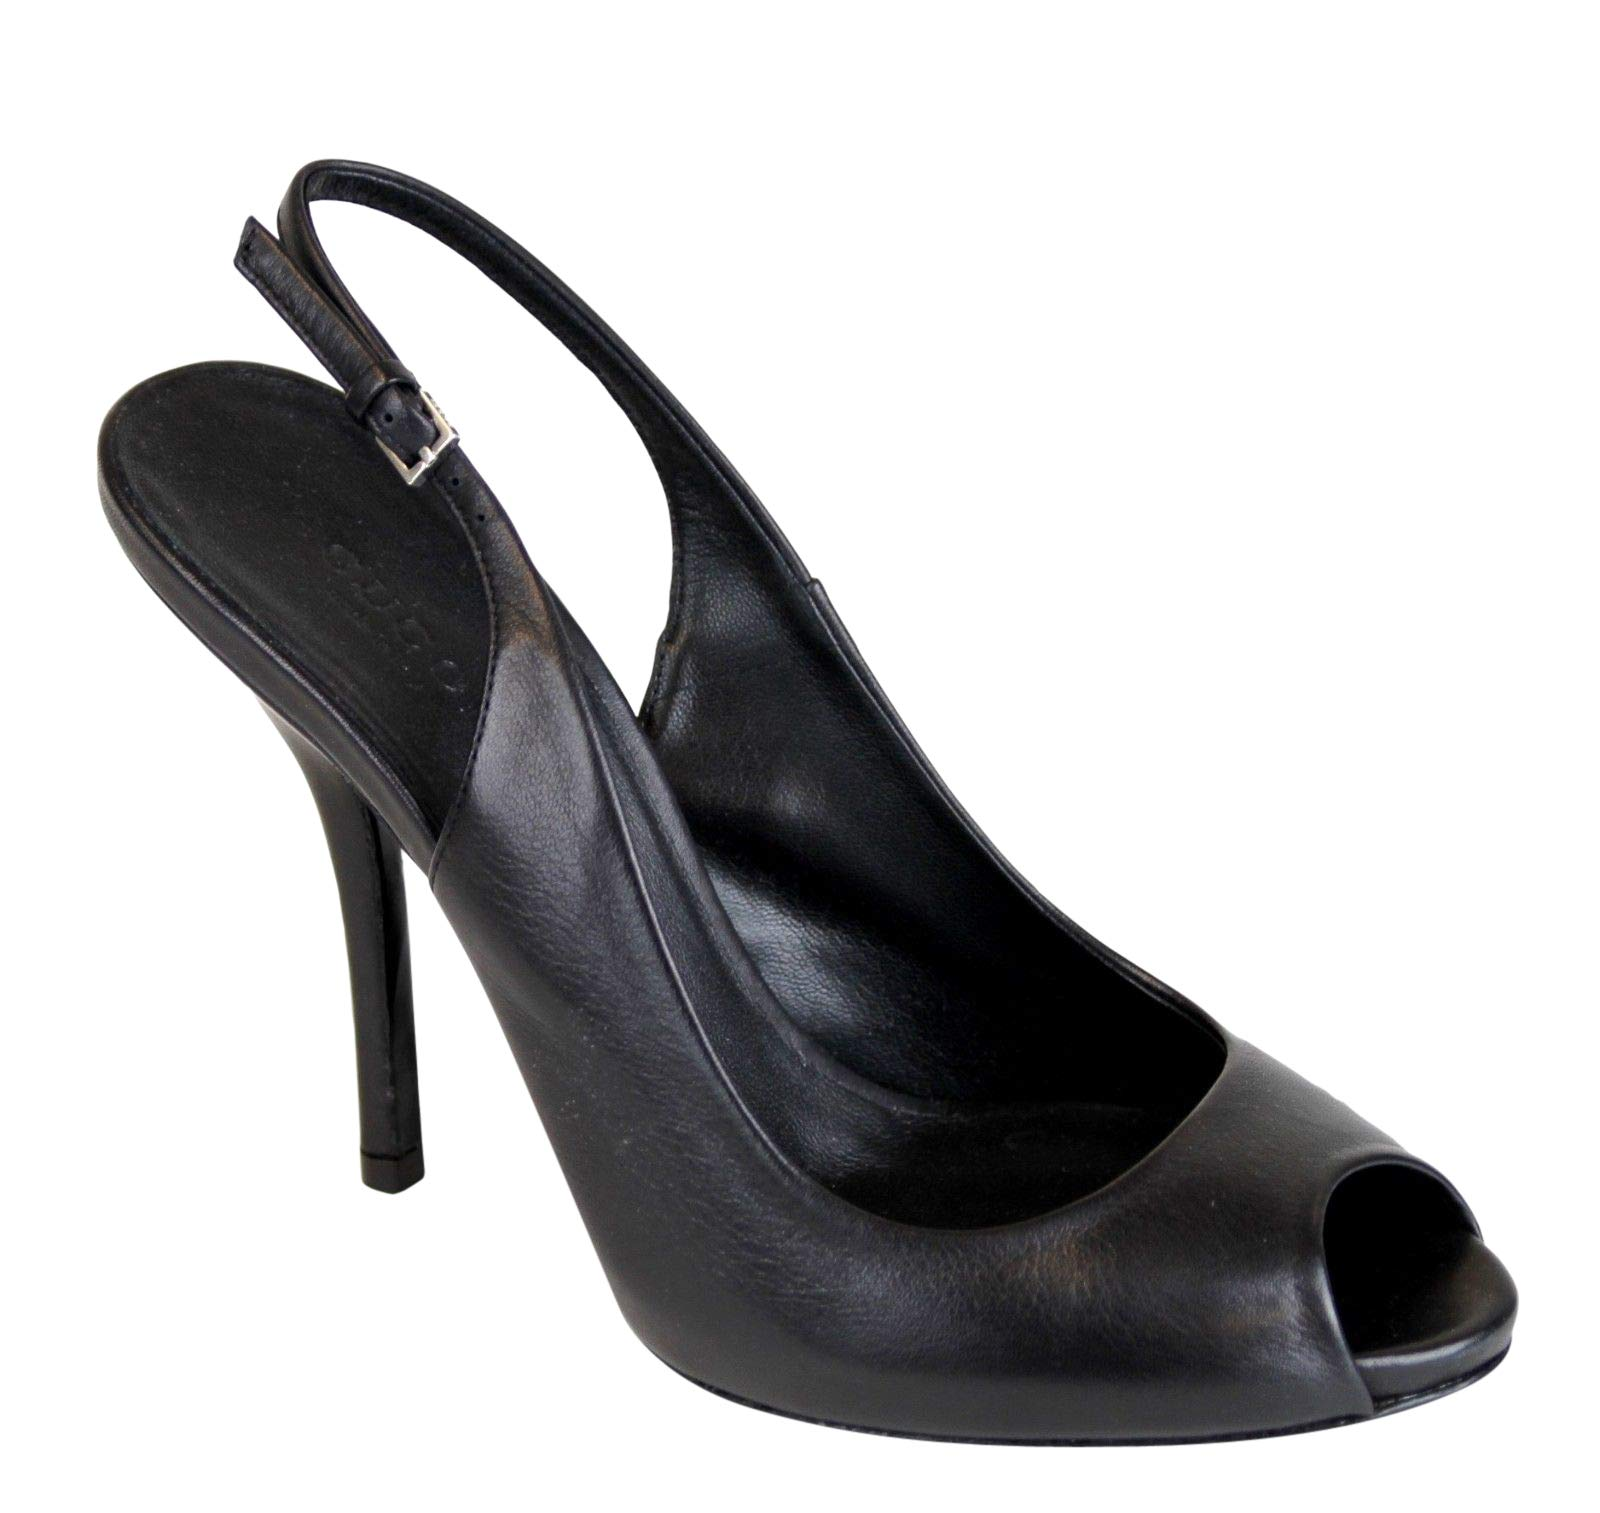 e745509d26d7b Gucci Women's Black Leather Sling-Back Heel Pump 317033 | ShoesCrave